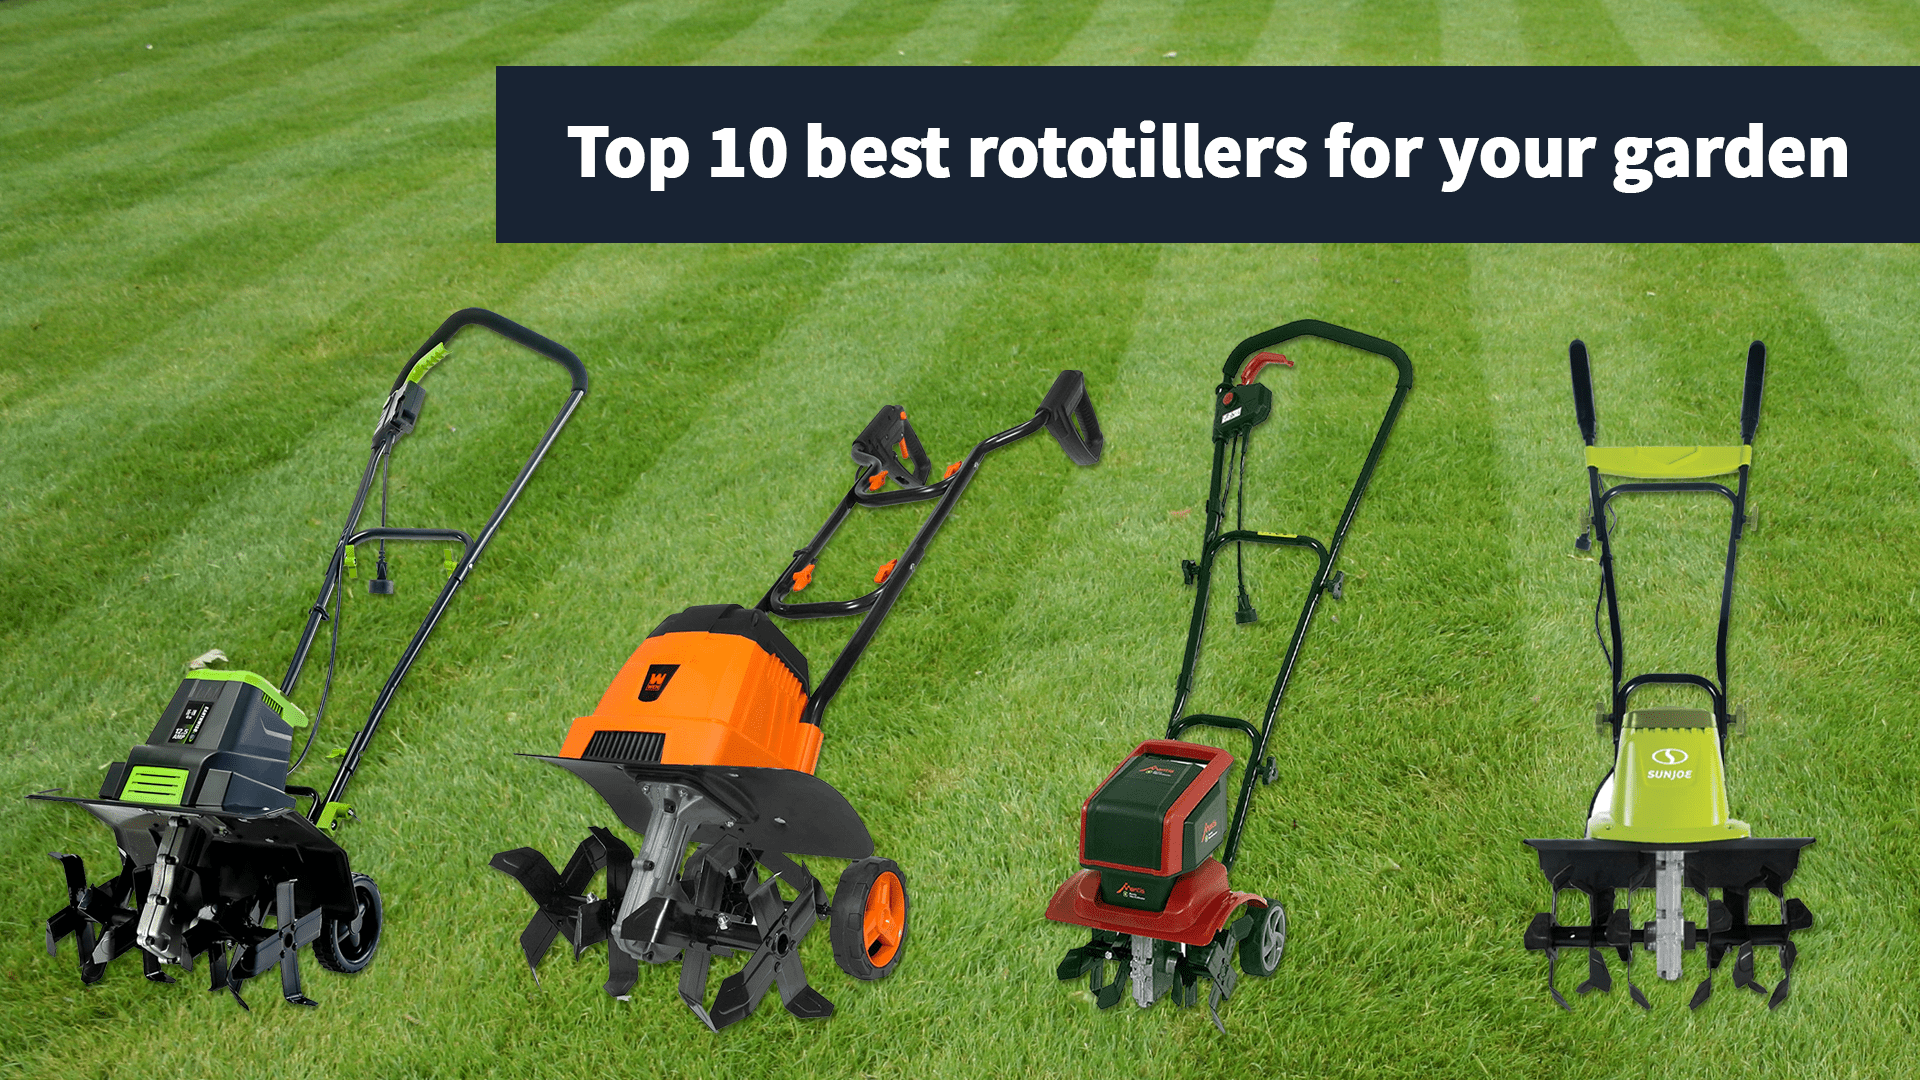 top 10 best rototiller for your garden according to landscaping professionals